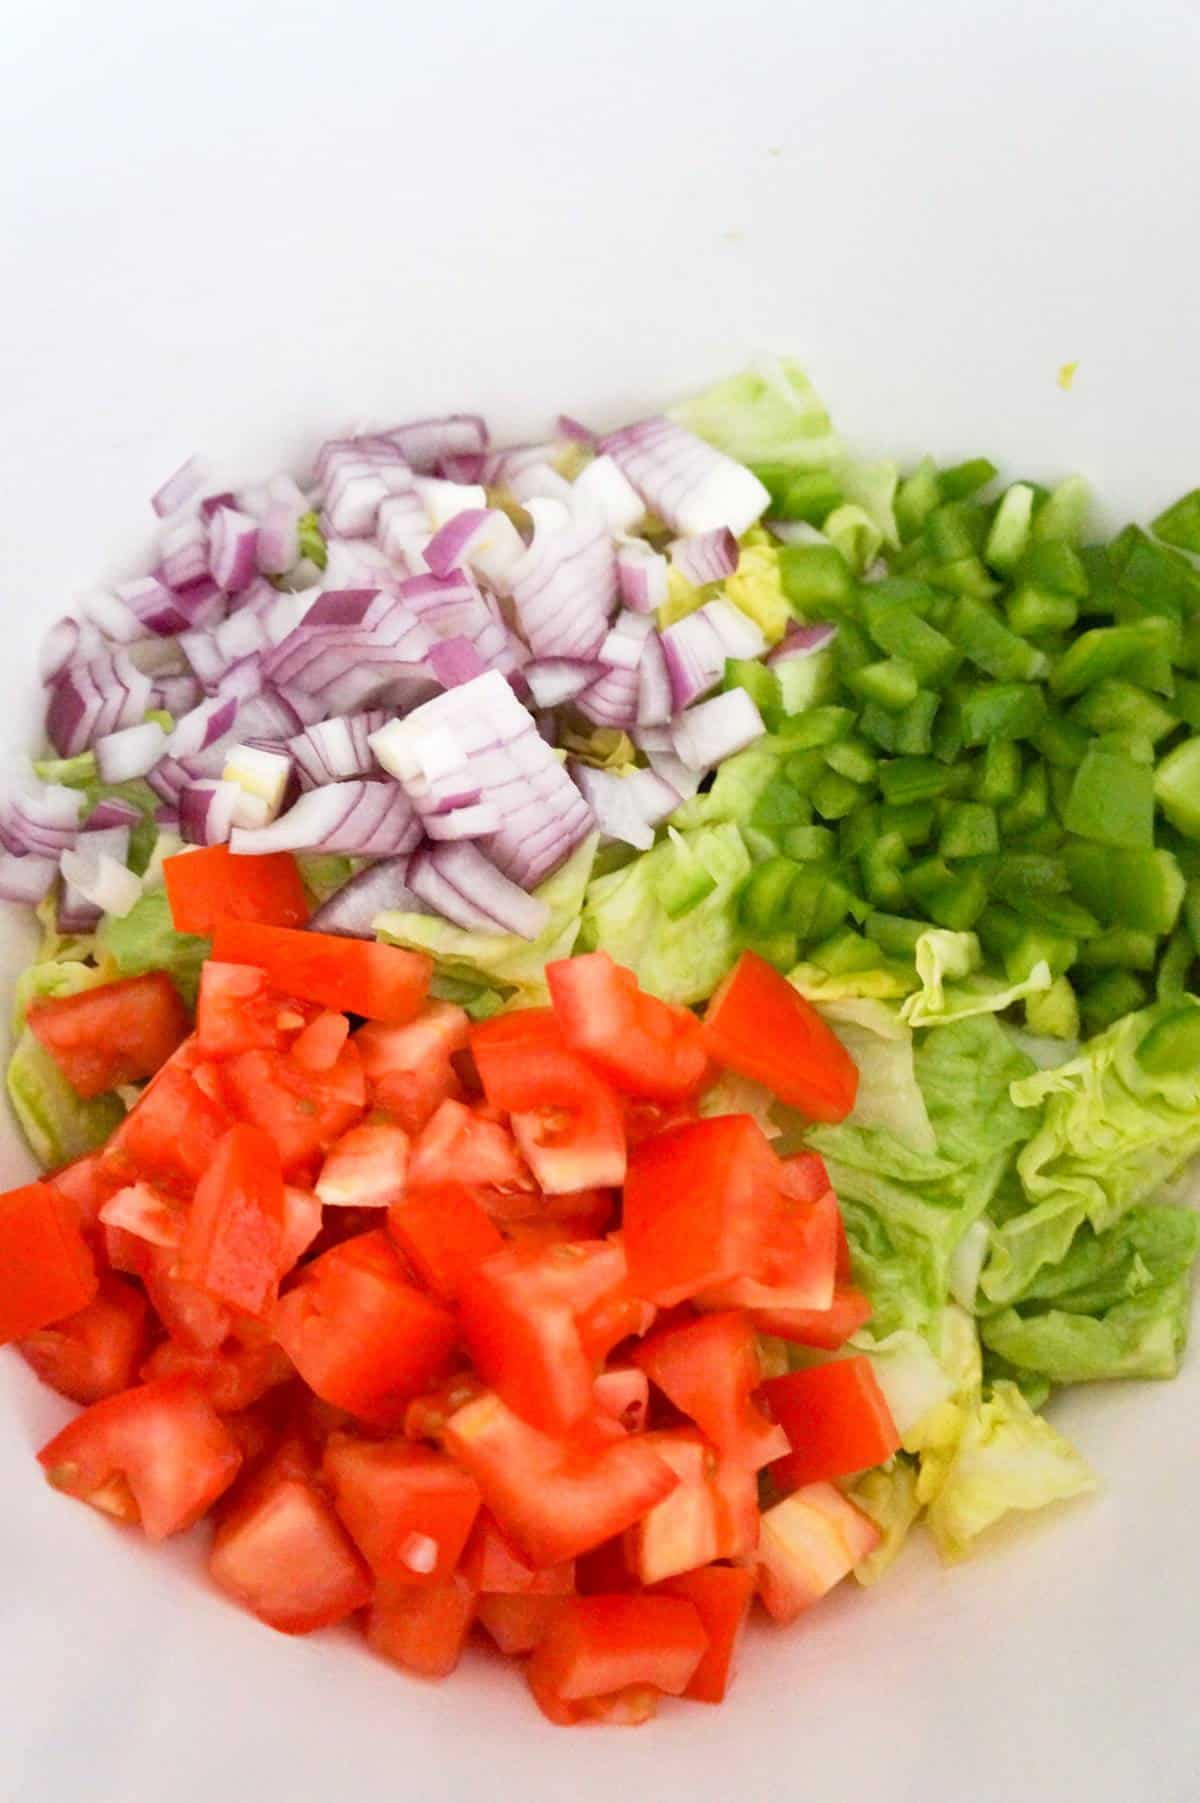 diced red onions, diced green peppers and diced tomatoes on top of lettuc